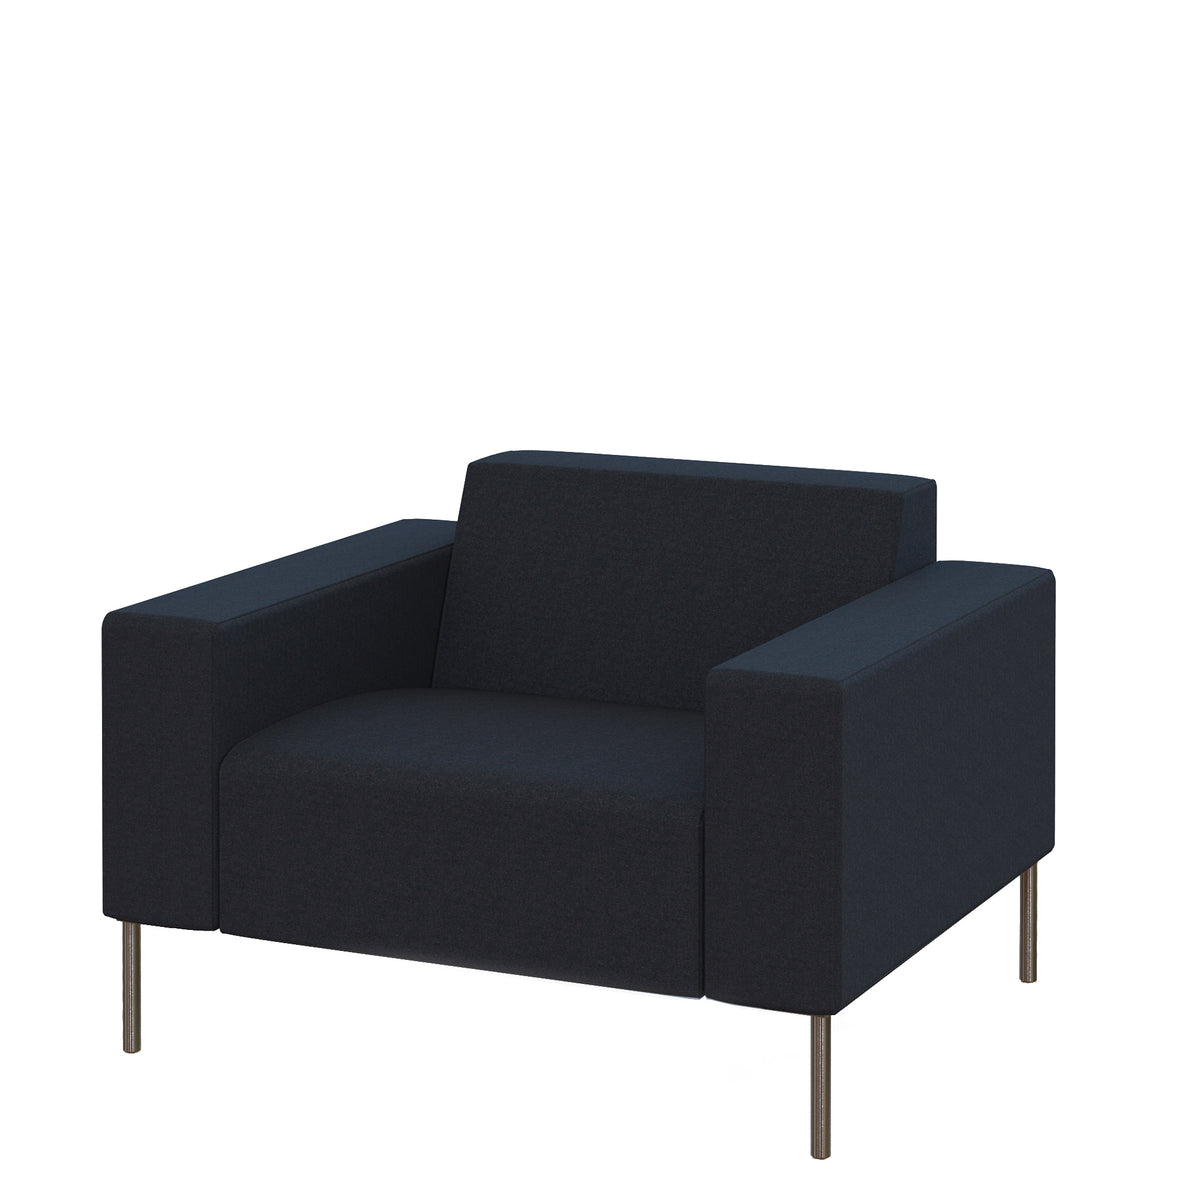 Hitch Mylius HM18 Origin Armchair Brushed Stainless Steel Legs Tower